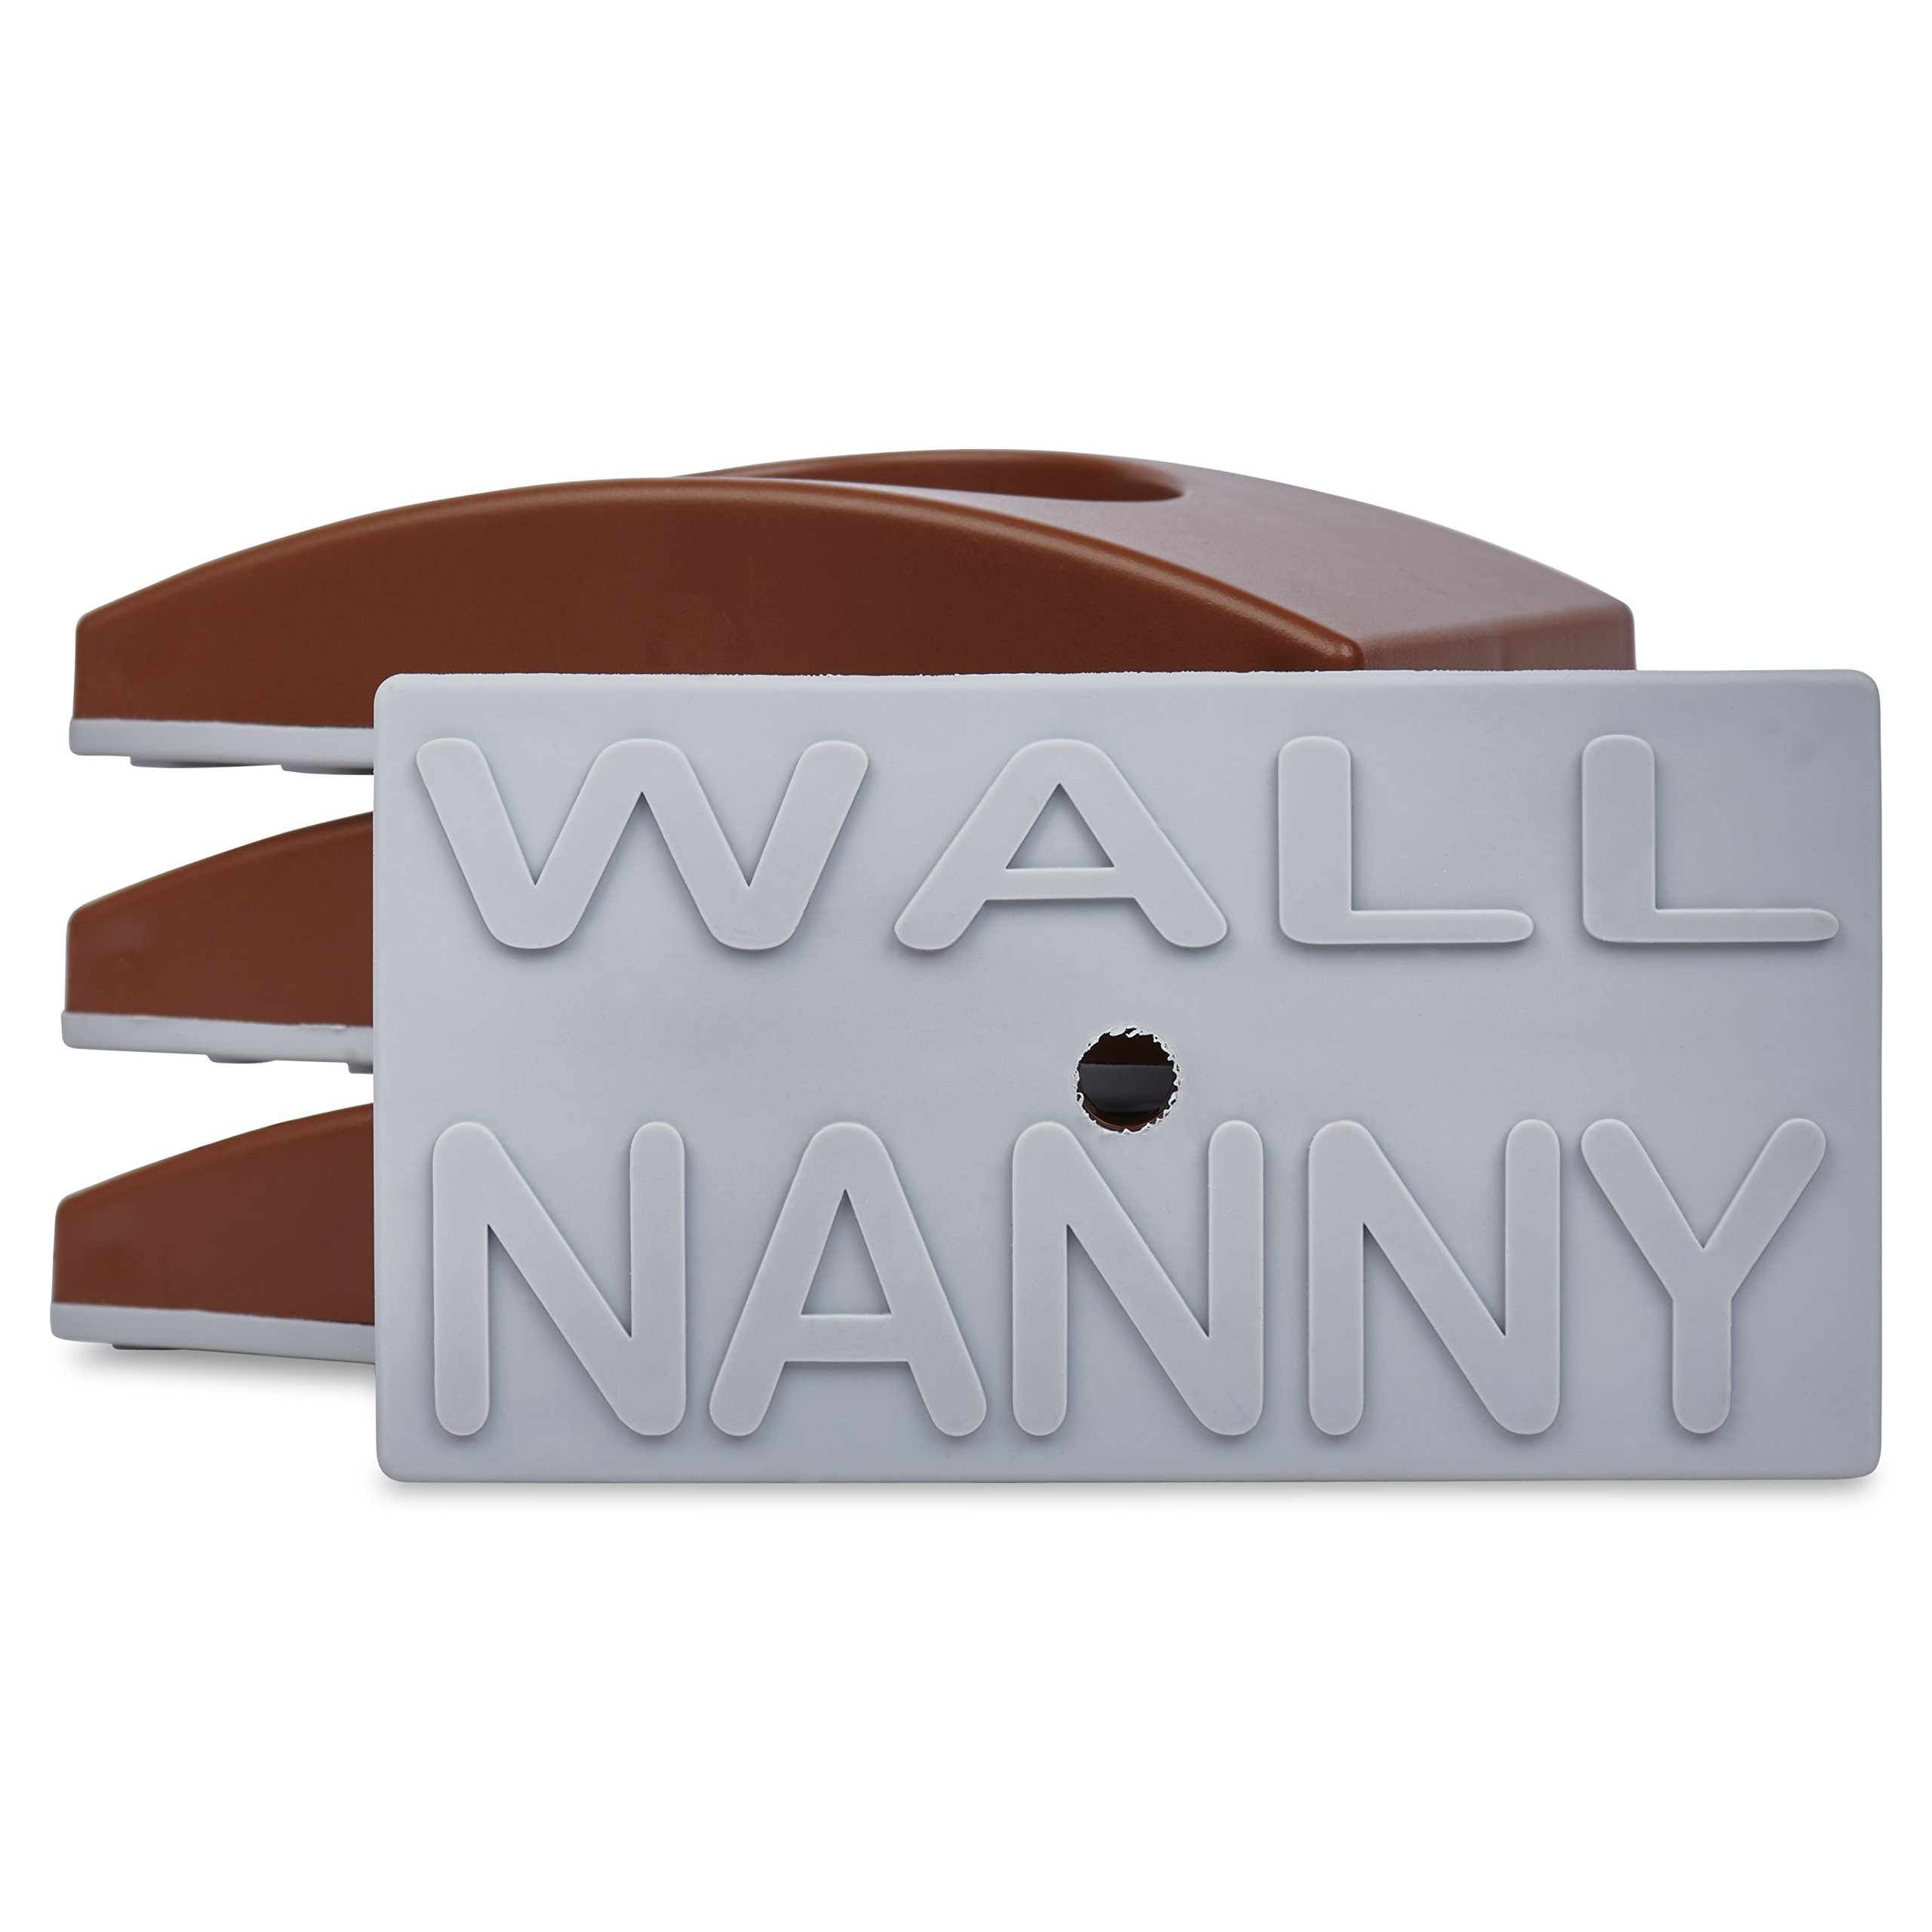 Wall Nanny (4 Pack) Baby Gate Wall Protector - Dark Trim Color - No Safety Hazard on Bottom Spindles - Small Saver Pad Saves Trim & Paint - Best Dog Pet Child Walk Thru Pressure Gates Guard (Brown)